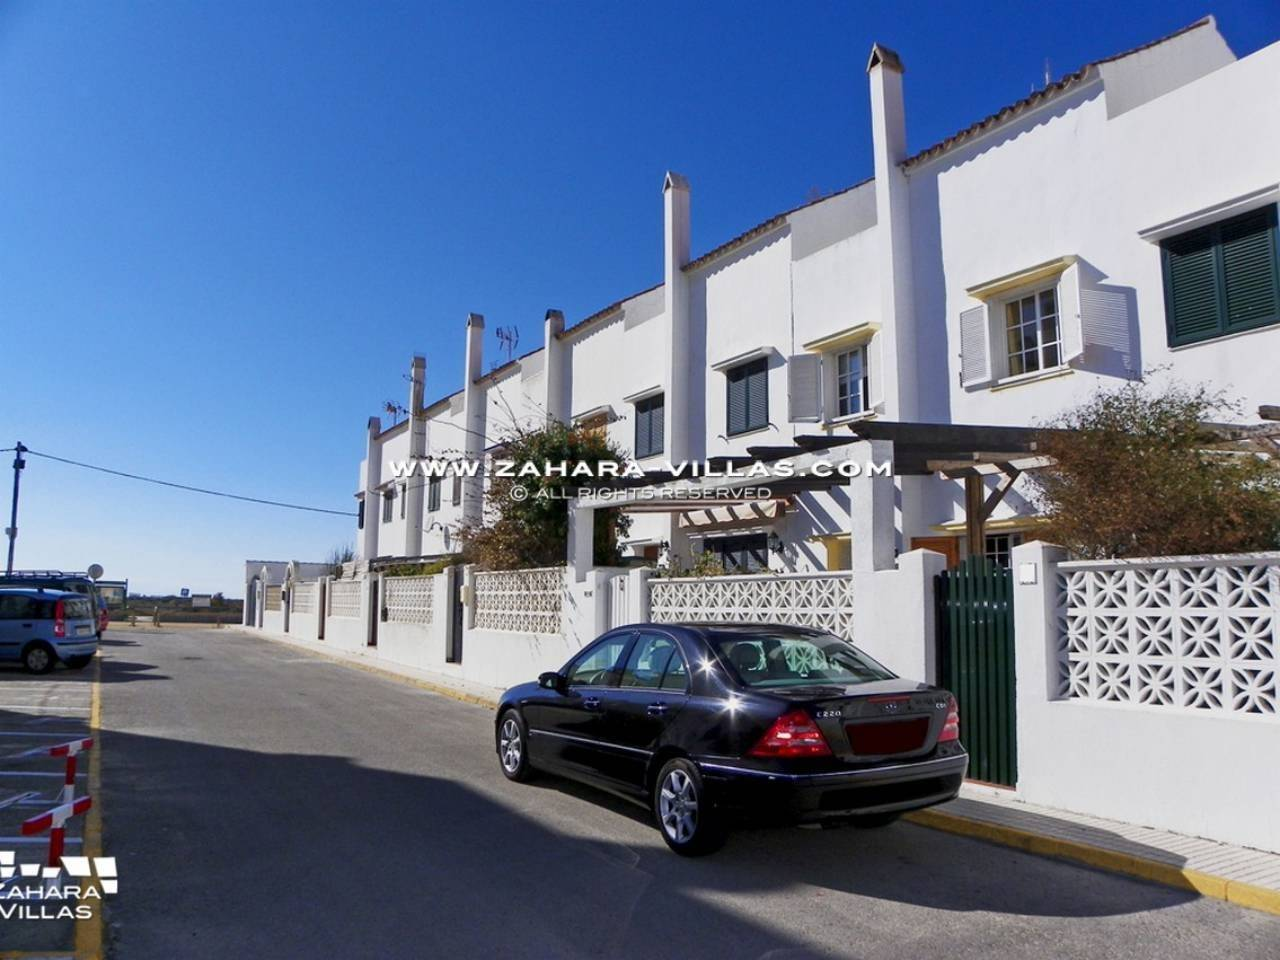 Imagen 17 de Great Townhouse in the village of Zahara de los Atunes for sale